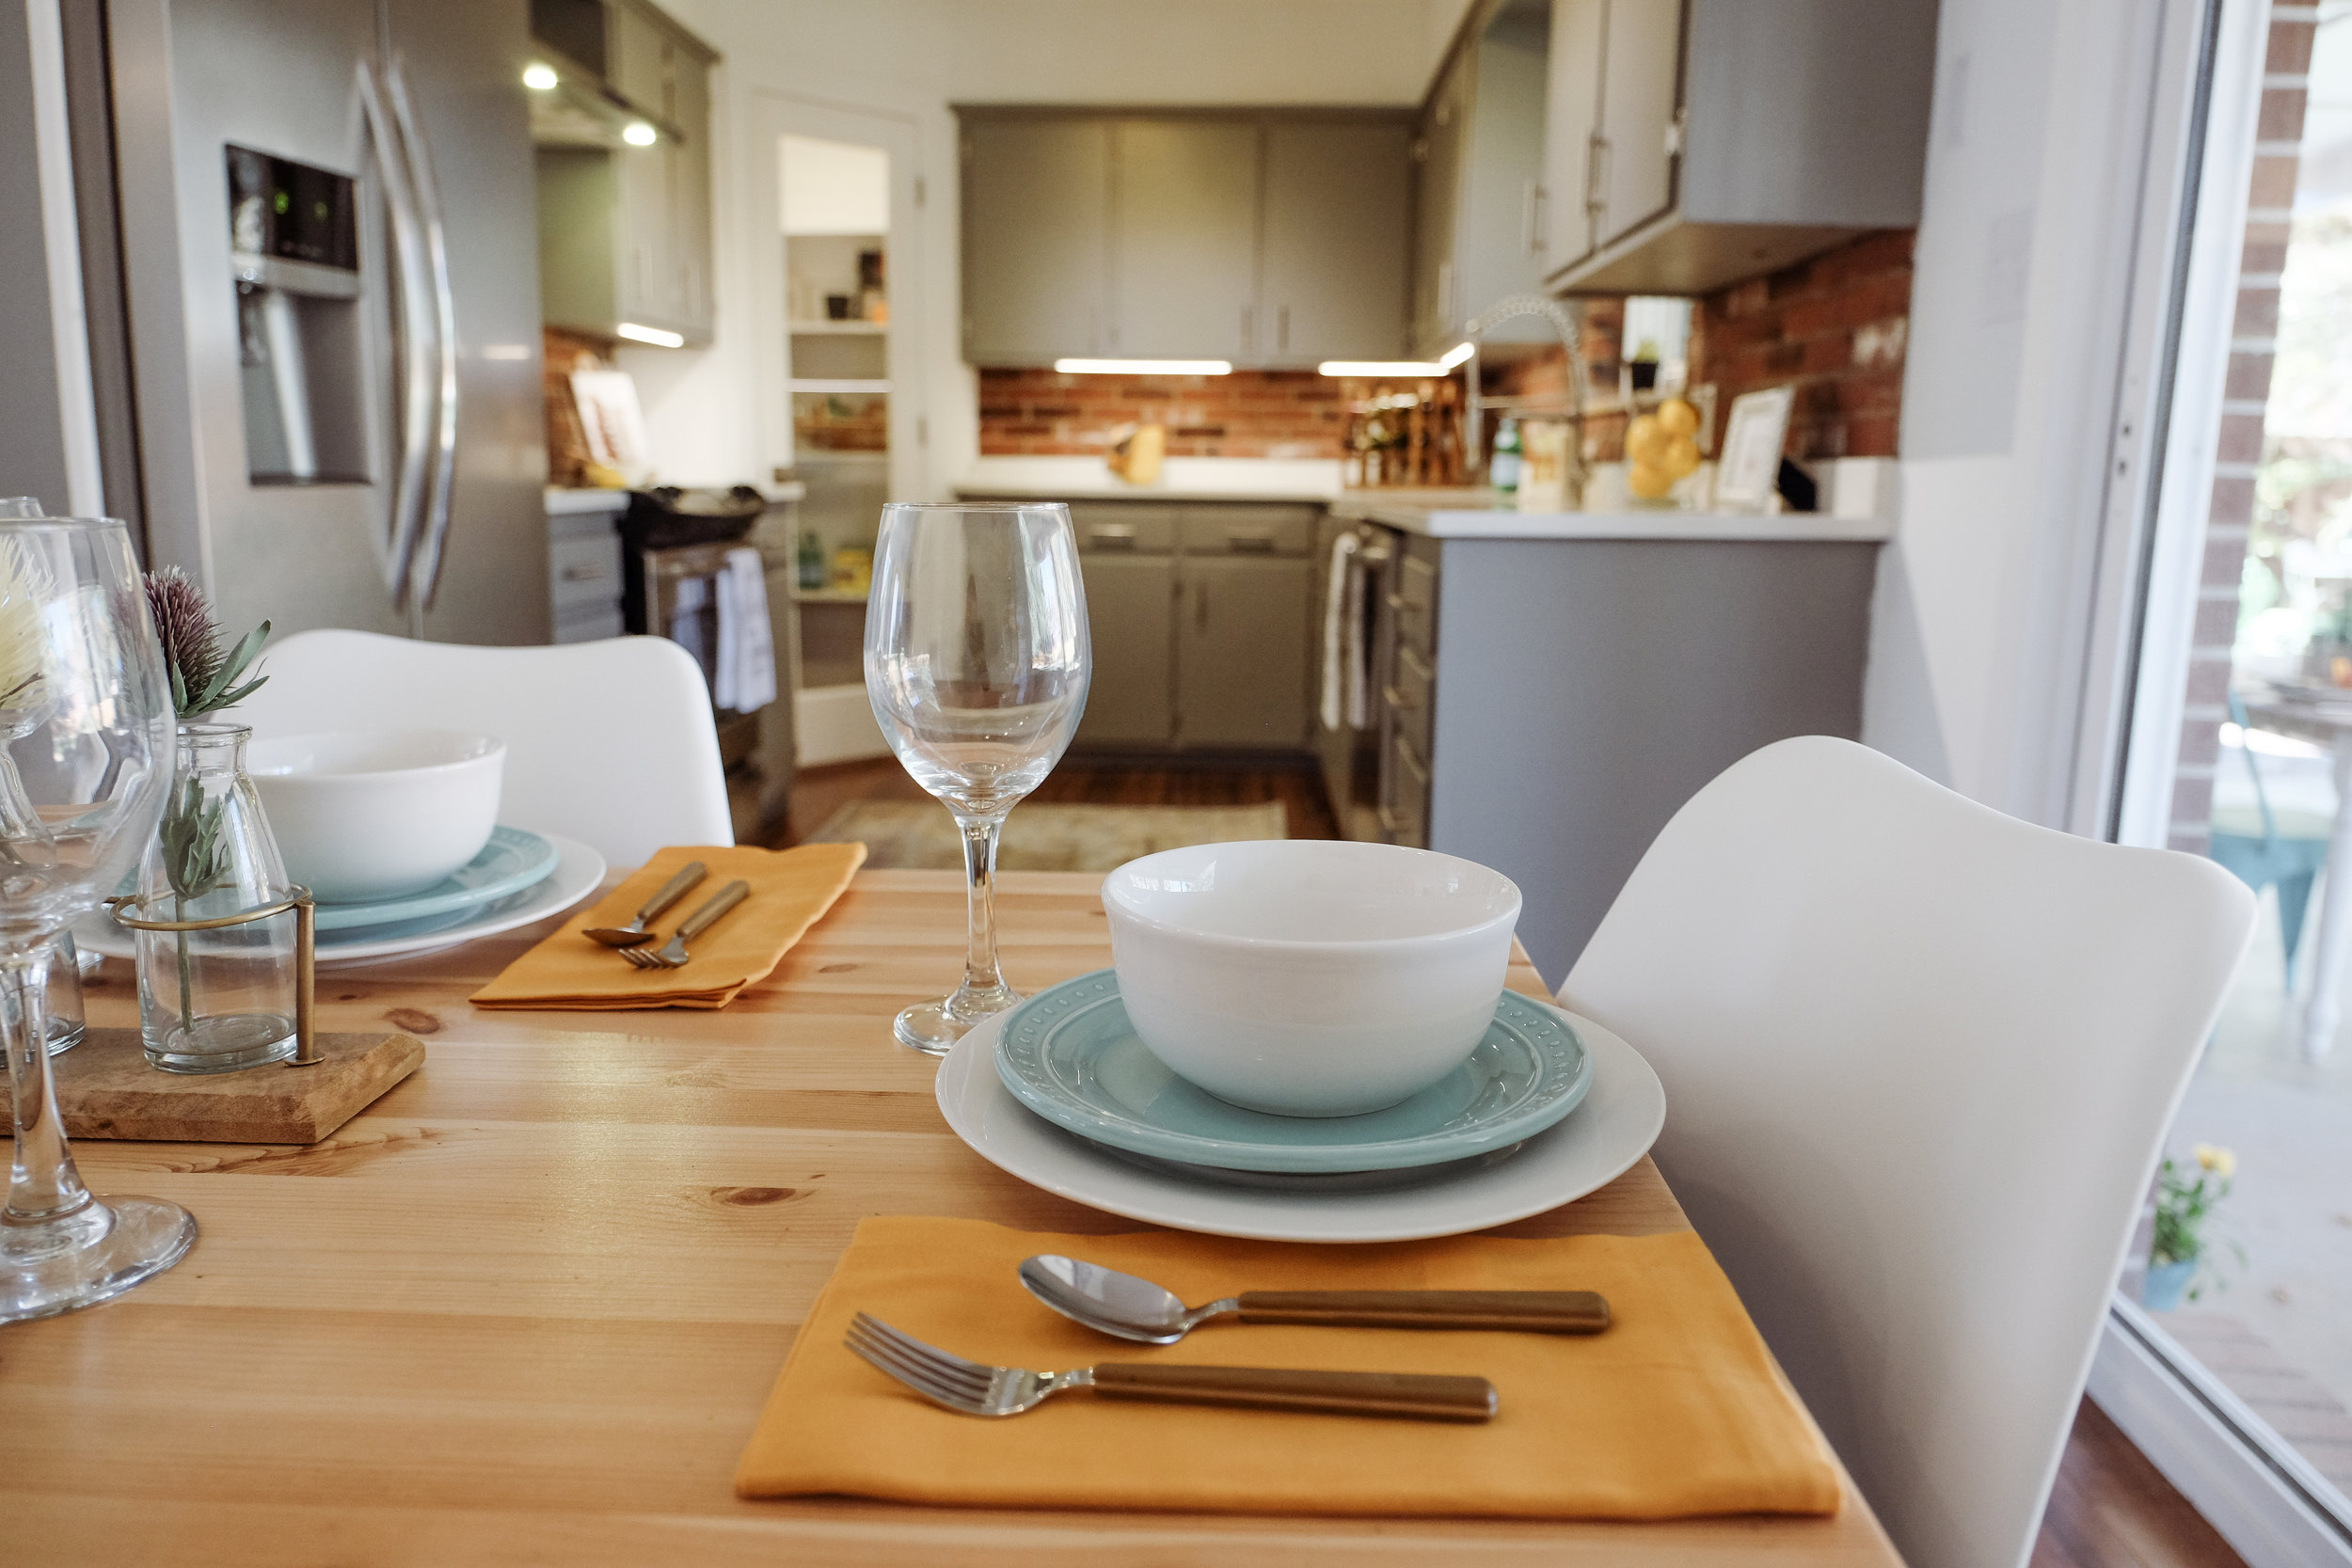 The white quartz counter-tops provide a clean, bright work surface with the hardness of granite but without the need to re-seal them every few years